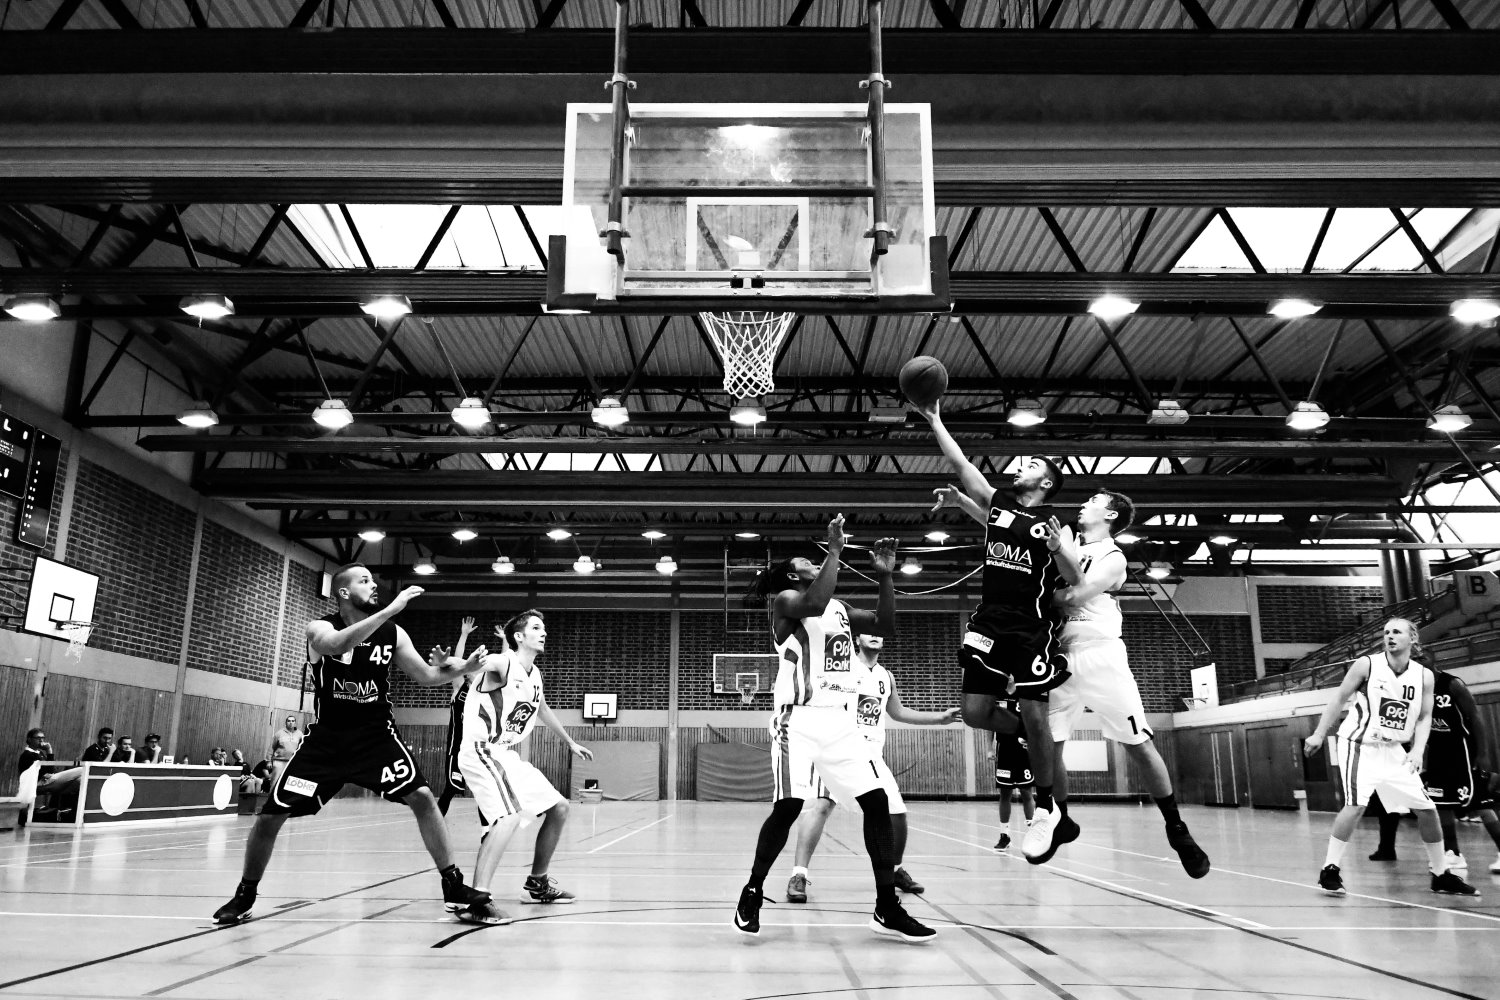 players playing basketball in black and white